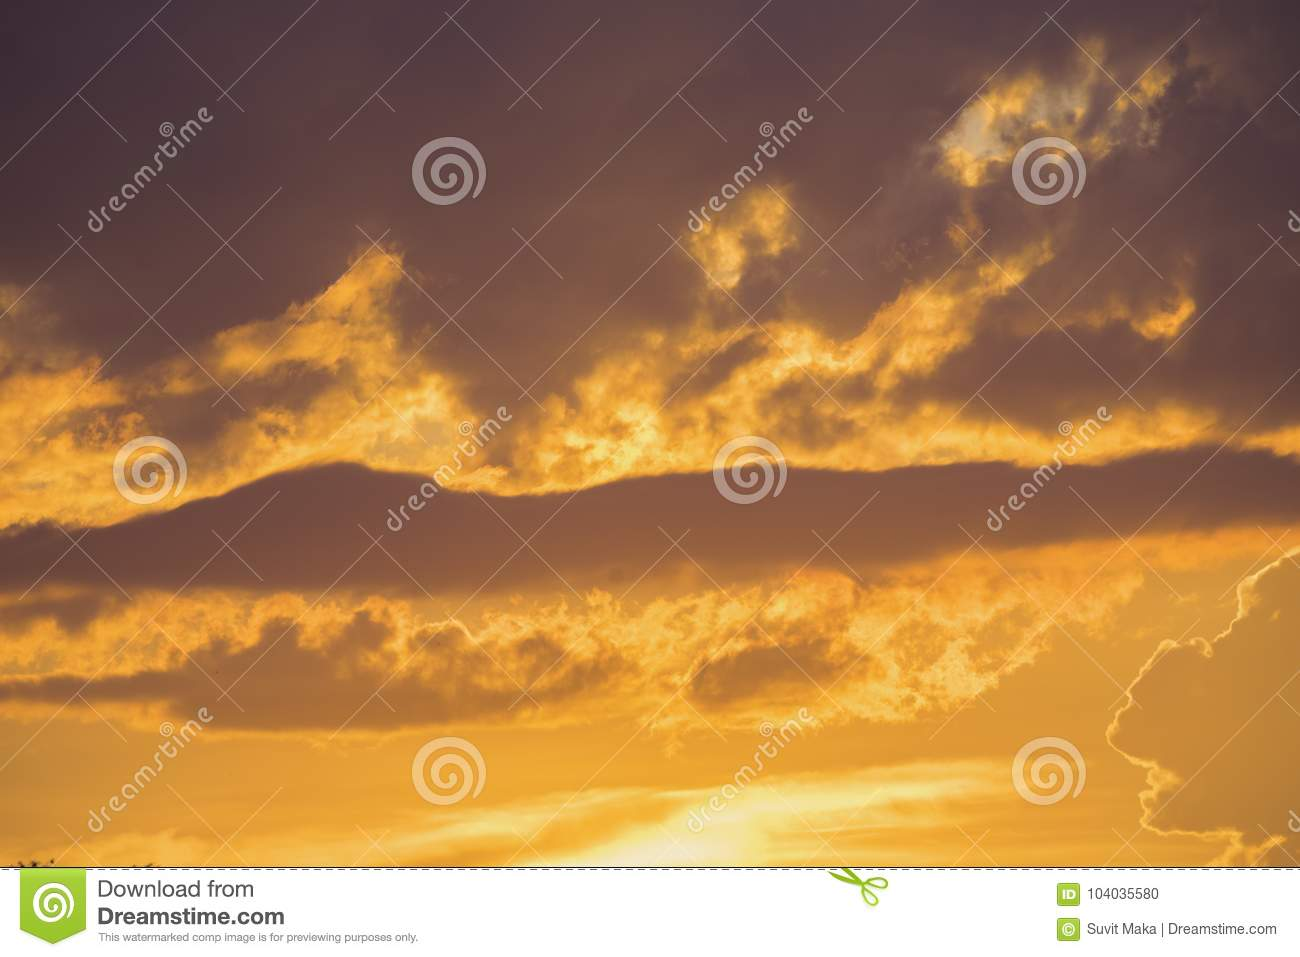 Download Beautiful Sunset In The Mountain Landscapesreflection Of Sky And Mountains Stock Photo